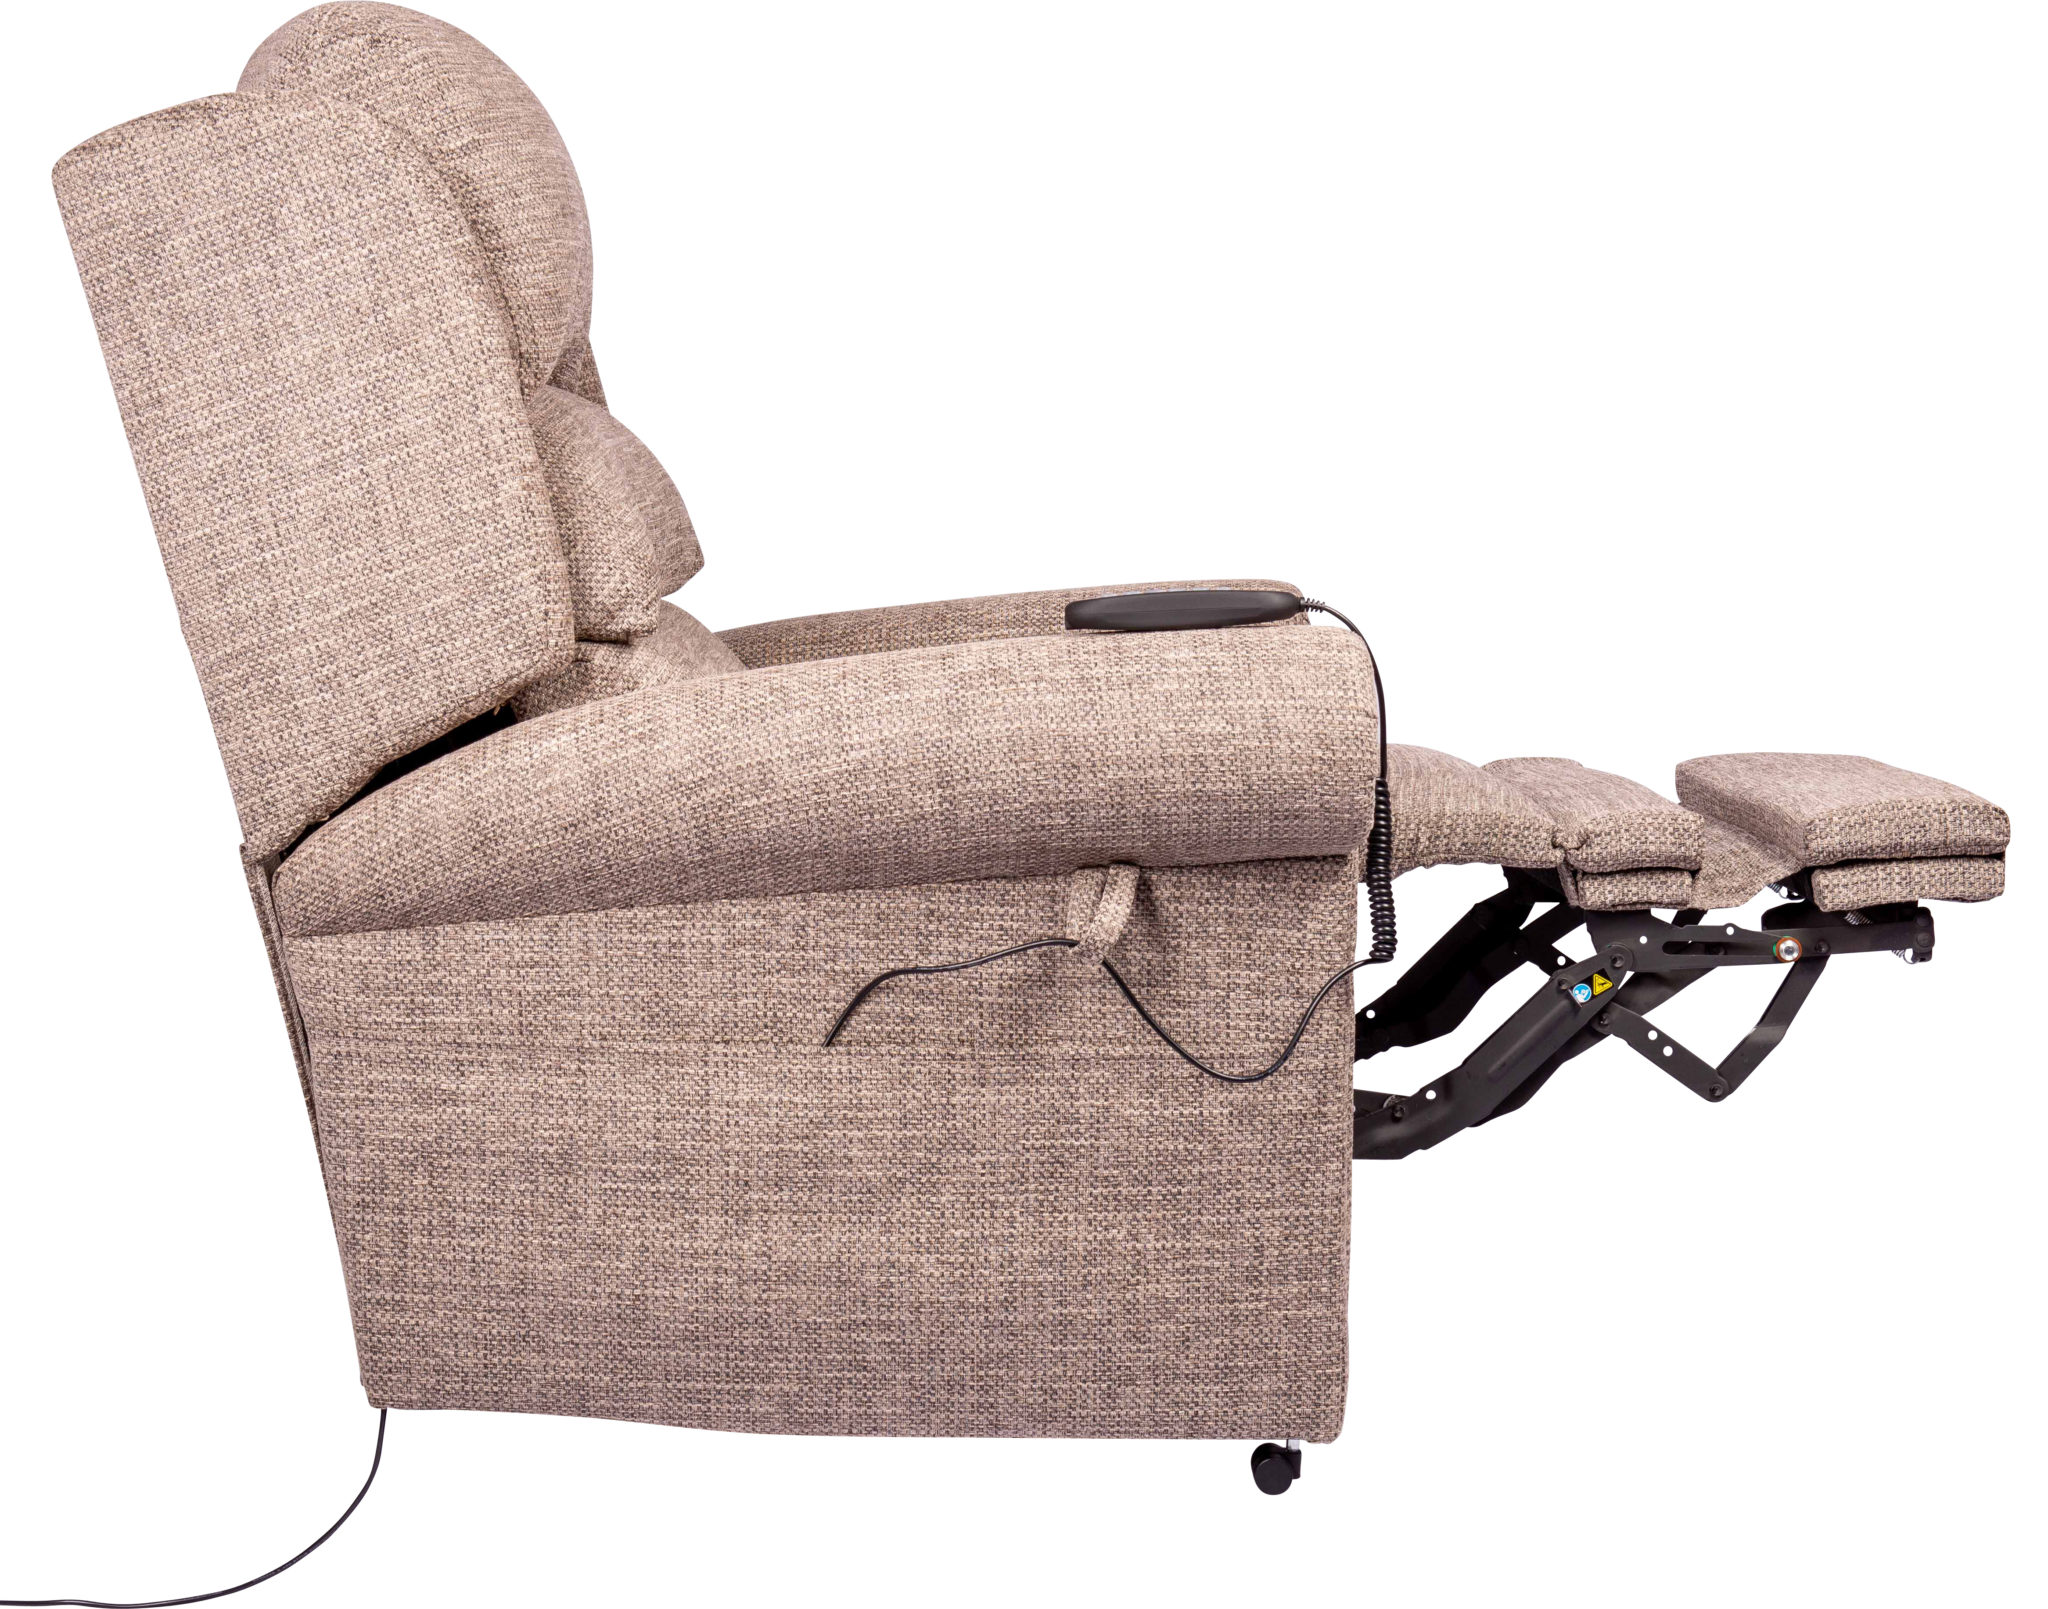 riser-recliner-armchair-electric-lift-chair-mobility-pride-670-beige-DD-6VA8-HTOW-foot-rest.jpg